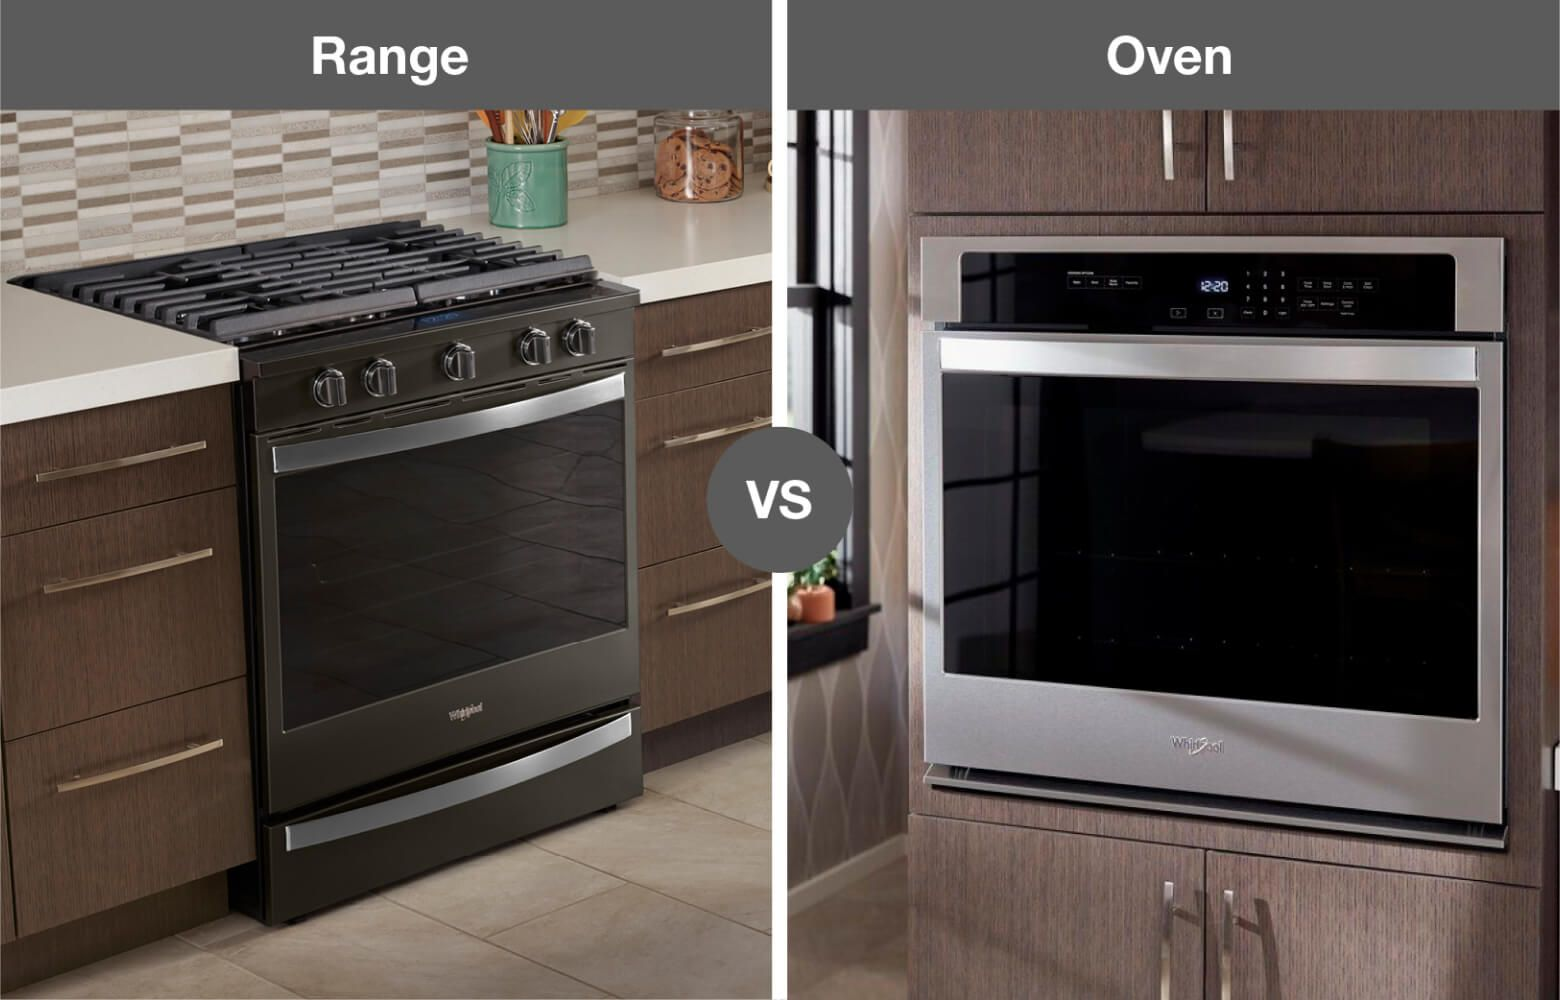 Whirlpool® kitchen range and wall oven